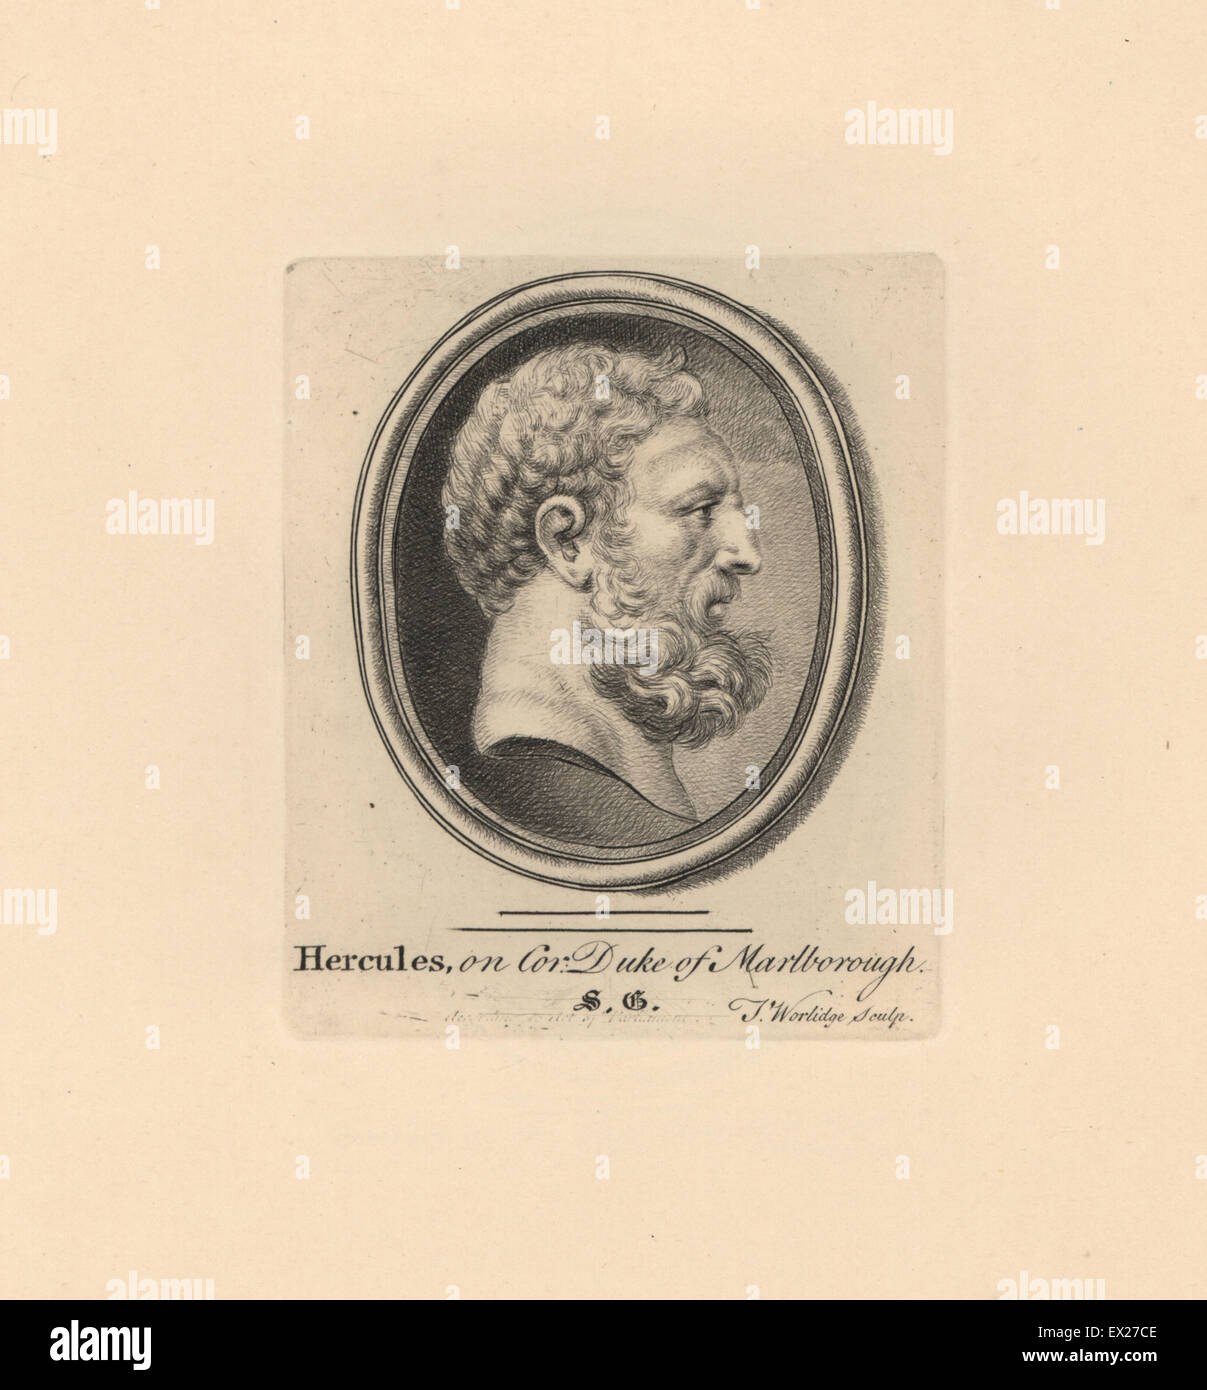 Portrait of Hercules, Greek mythical hero, on cornelian in the Duke of Marlborough's collection. Copperplate - Stock Image